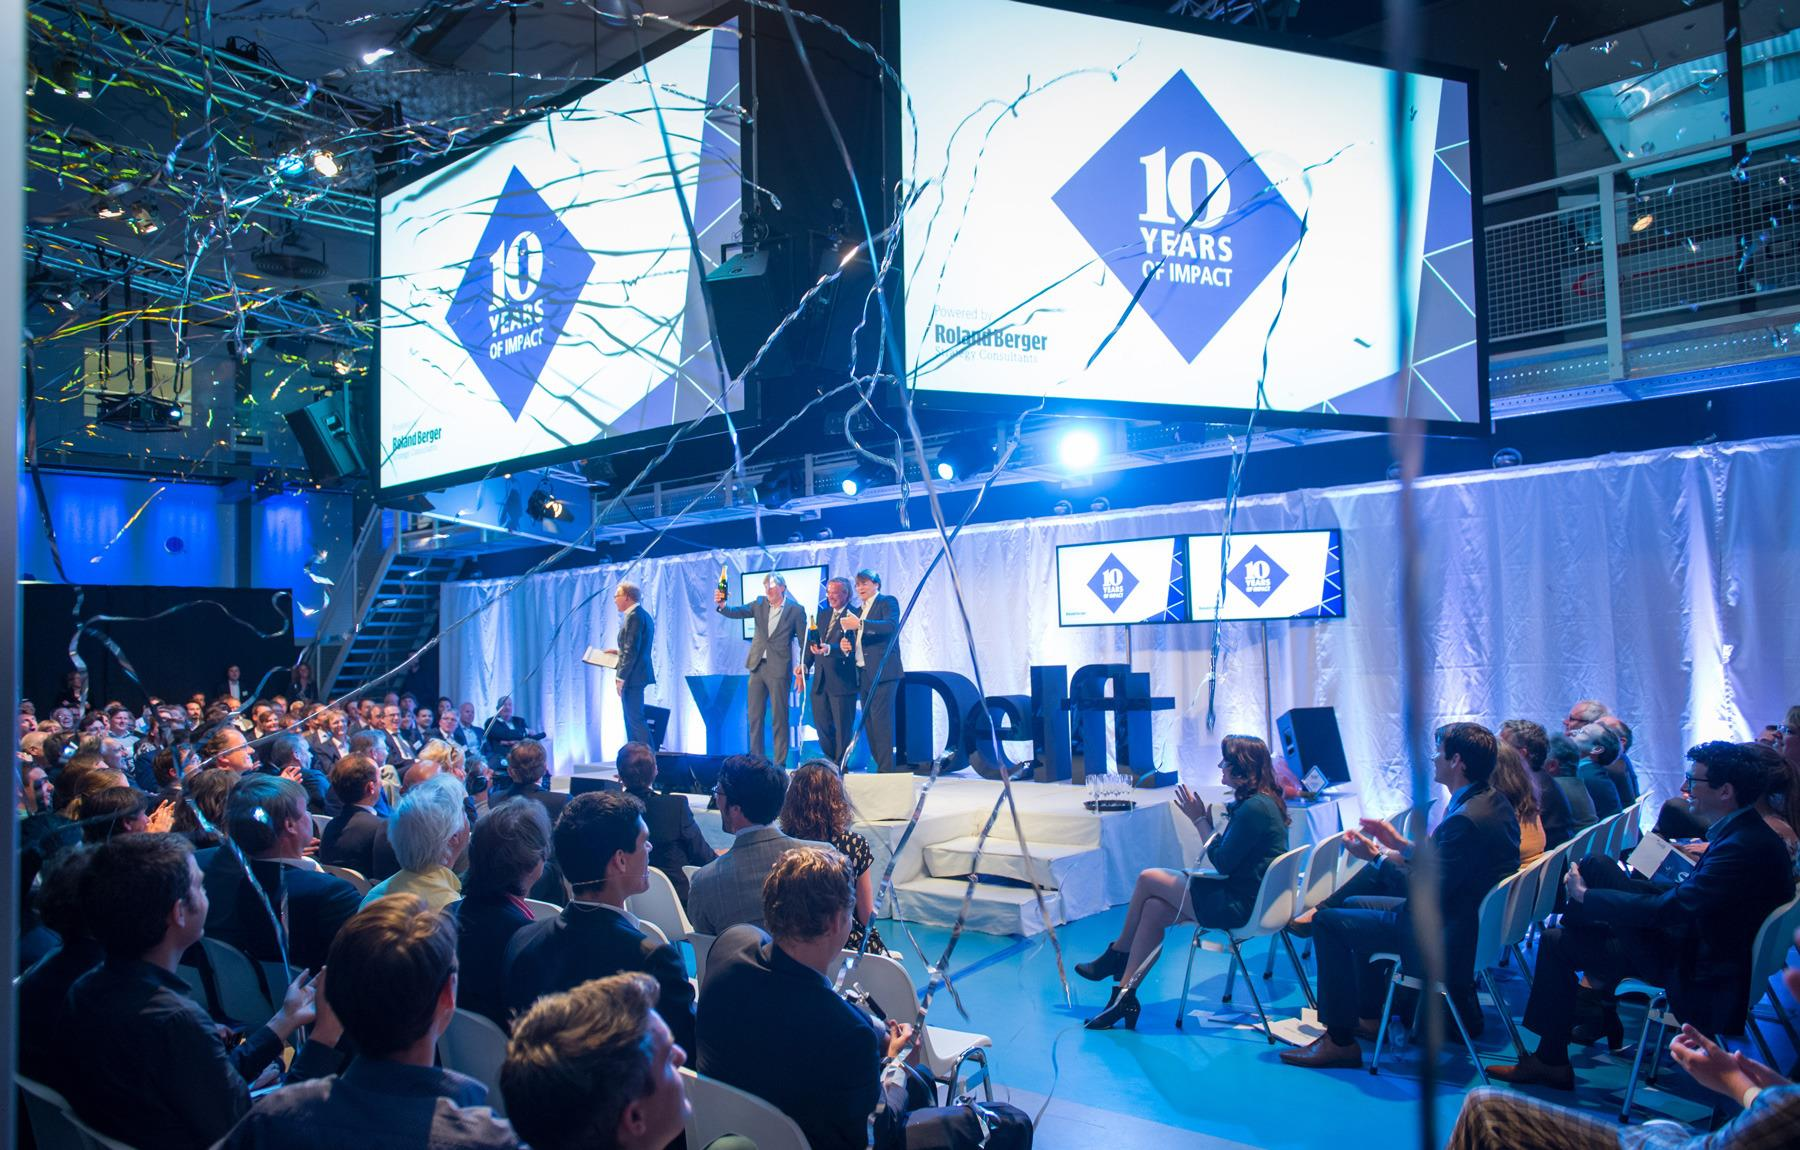 YES!Delft celebrating its 10 year anniversary.